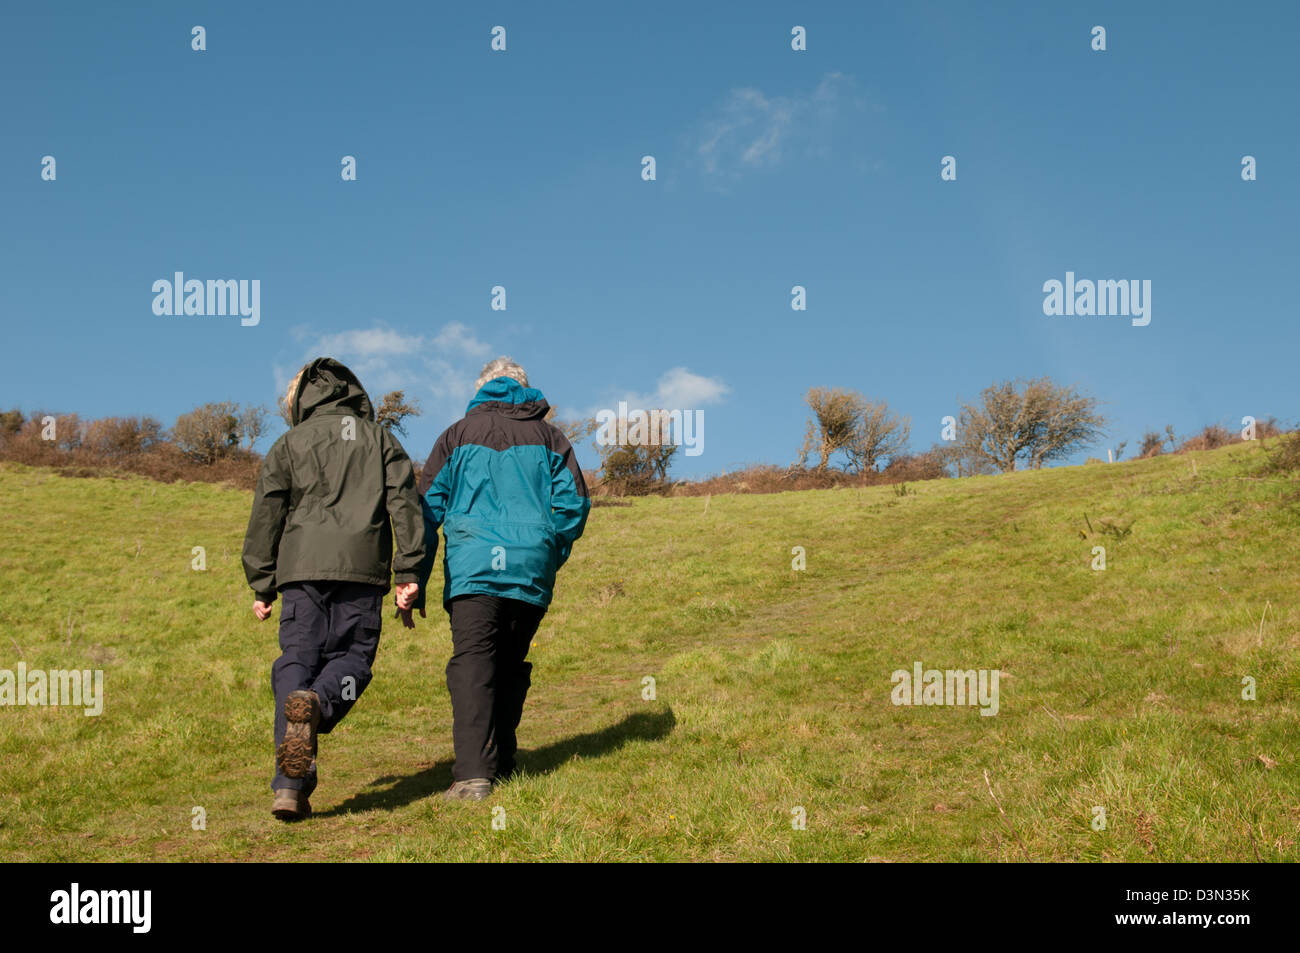 Two ramblers in walking jackets, boots and trousers energetically walking up a steep hill on a sunny spring day - Stock Image